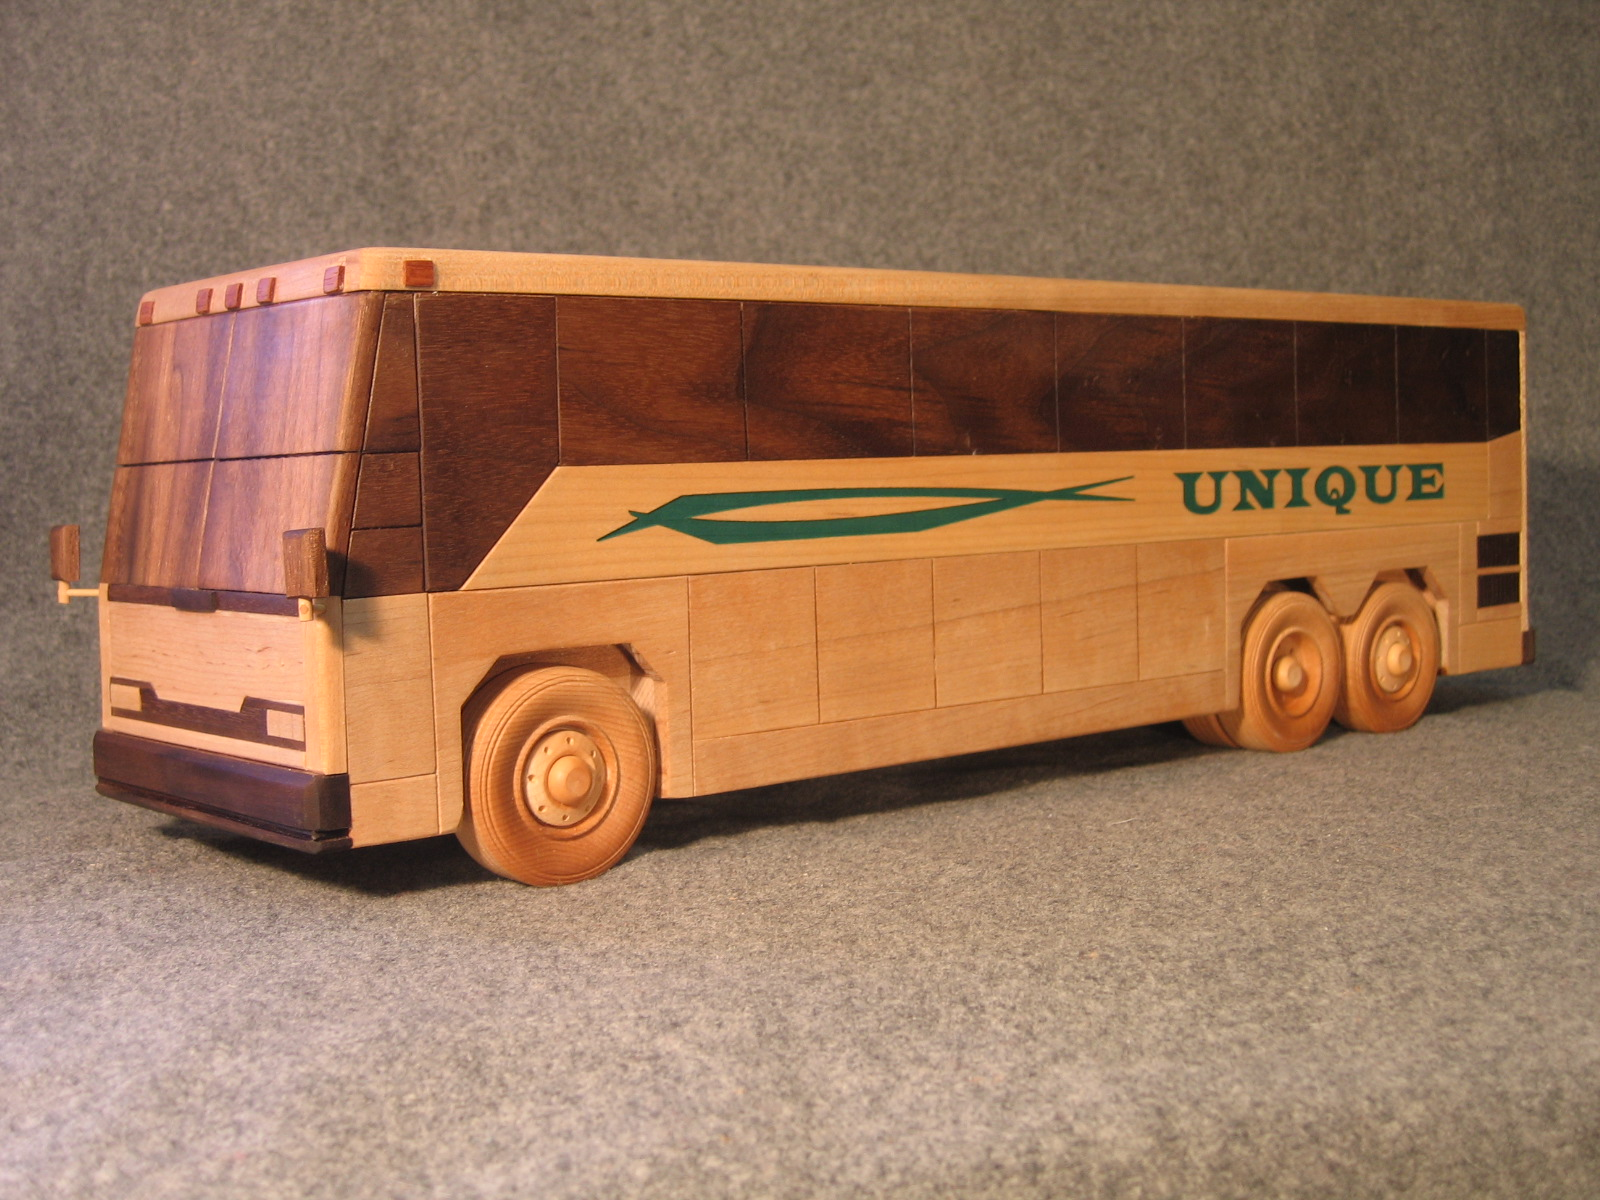 Knockabout Wooden Toys, Toy Trucks, wooden toy trucks, Wooden Toys ...